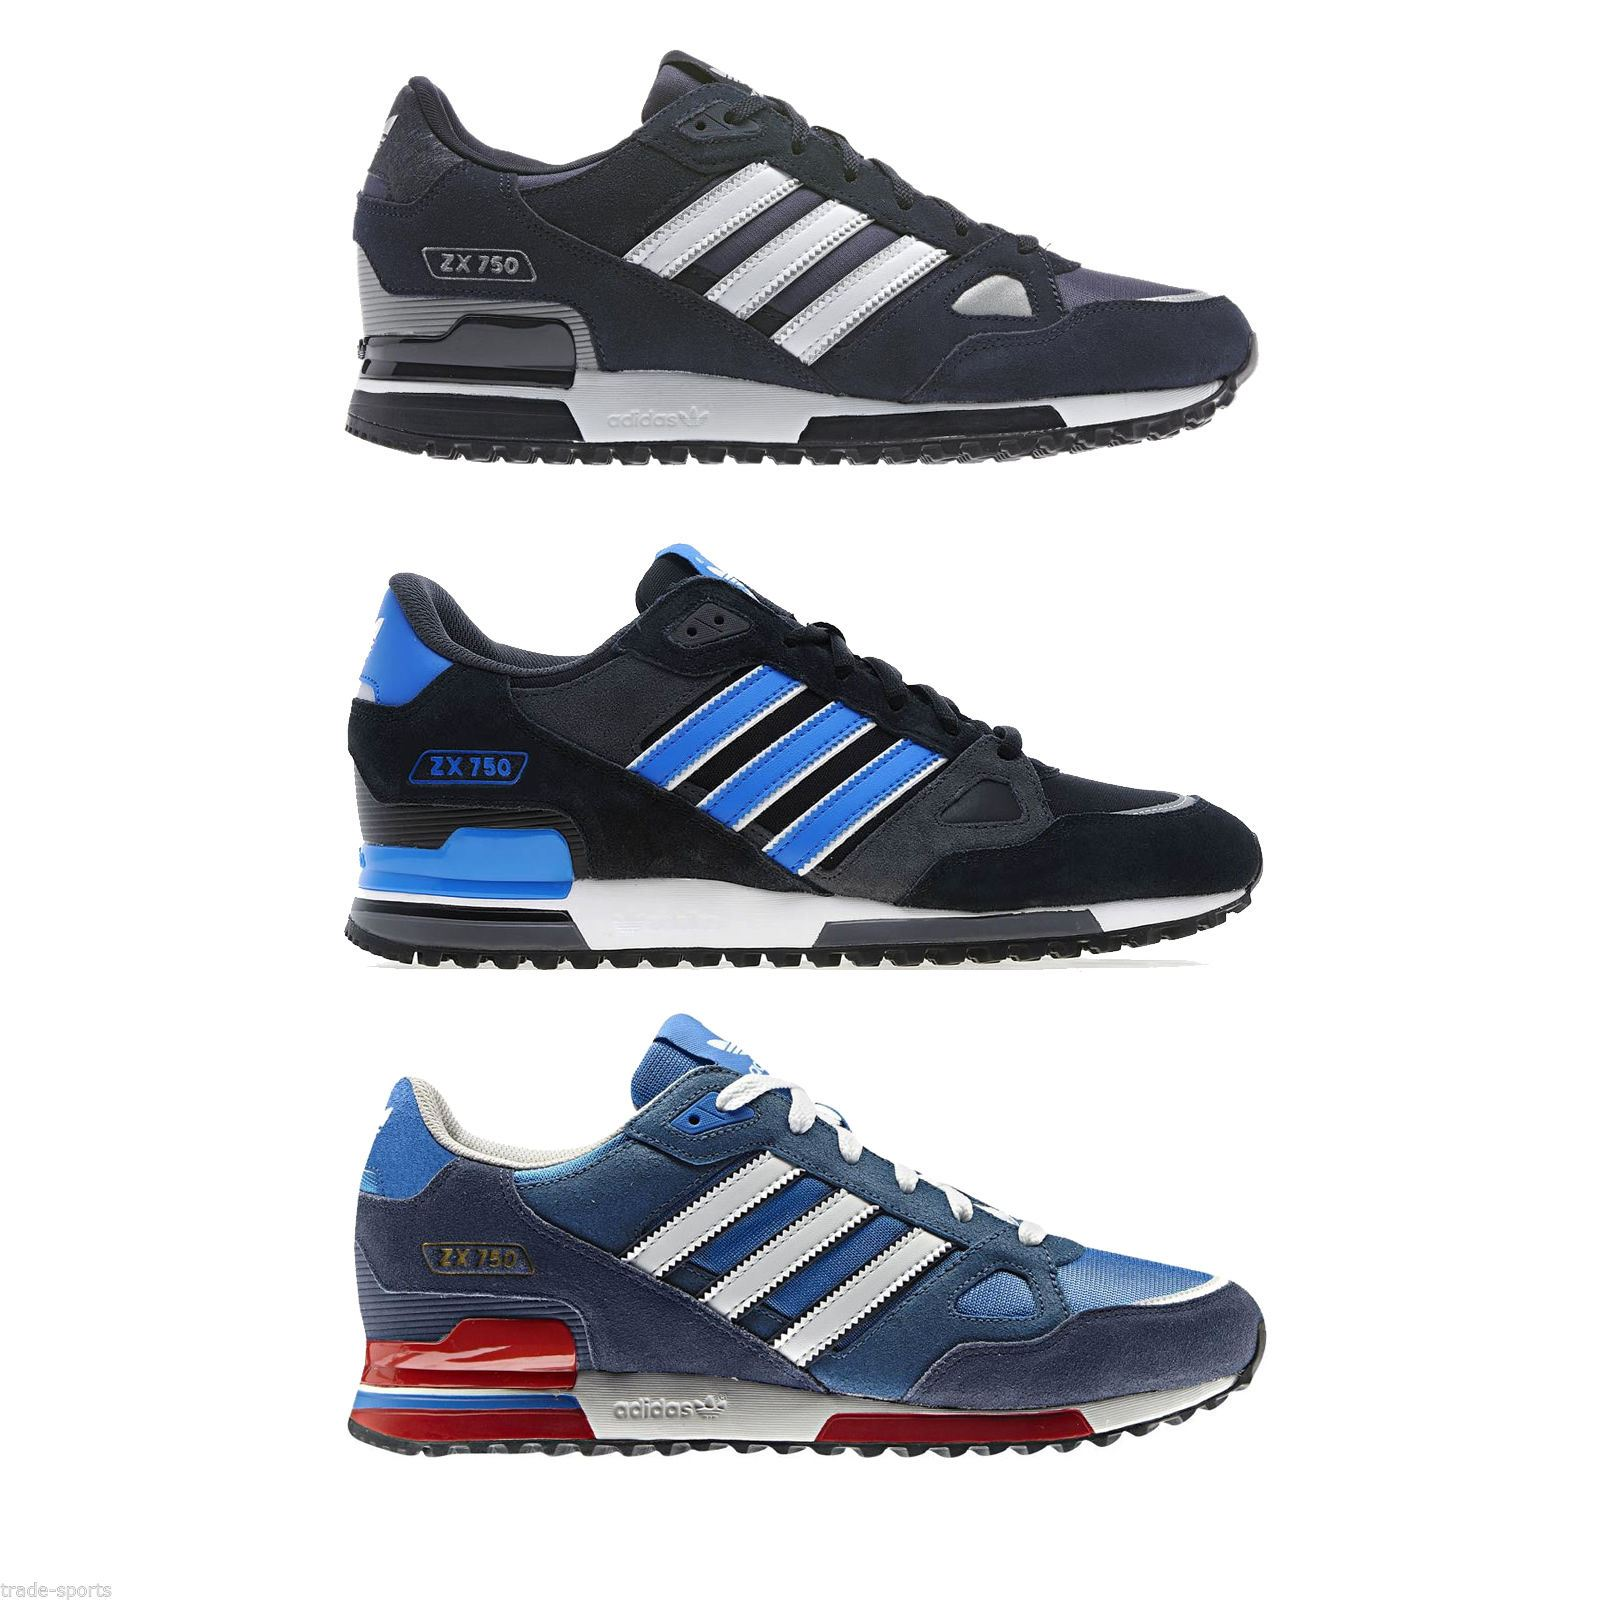 Details zu ADIDAS ORIGINALS ZX 750 MENS RUNNING TRAINERS BLUE BLACK NAVY  SNEAKERS SHOES NEW